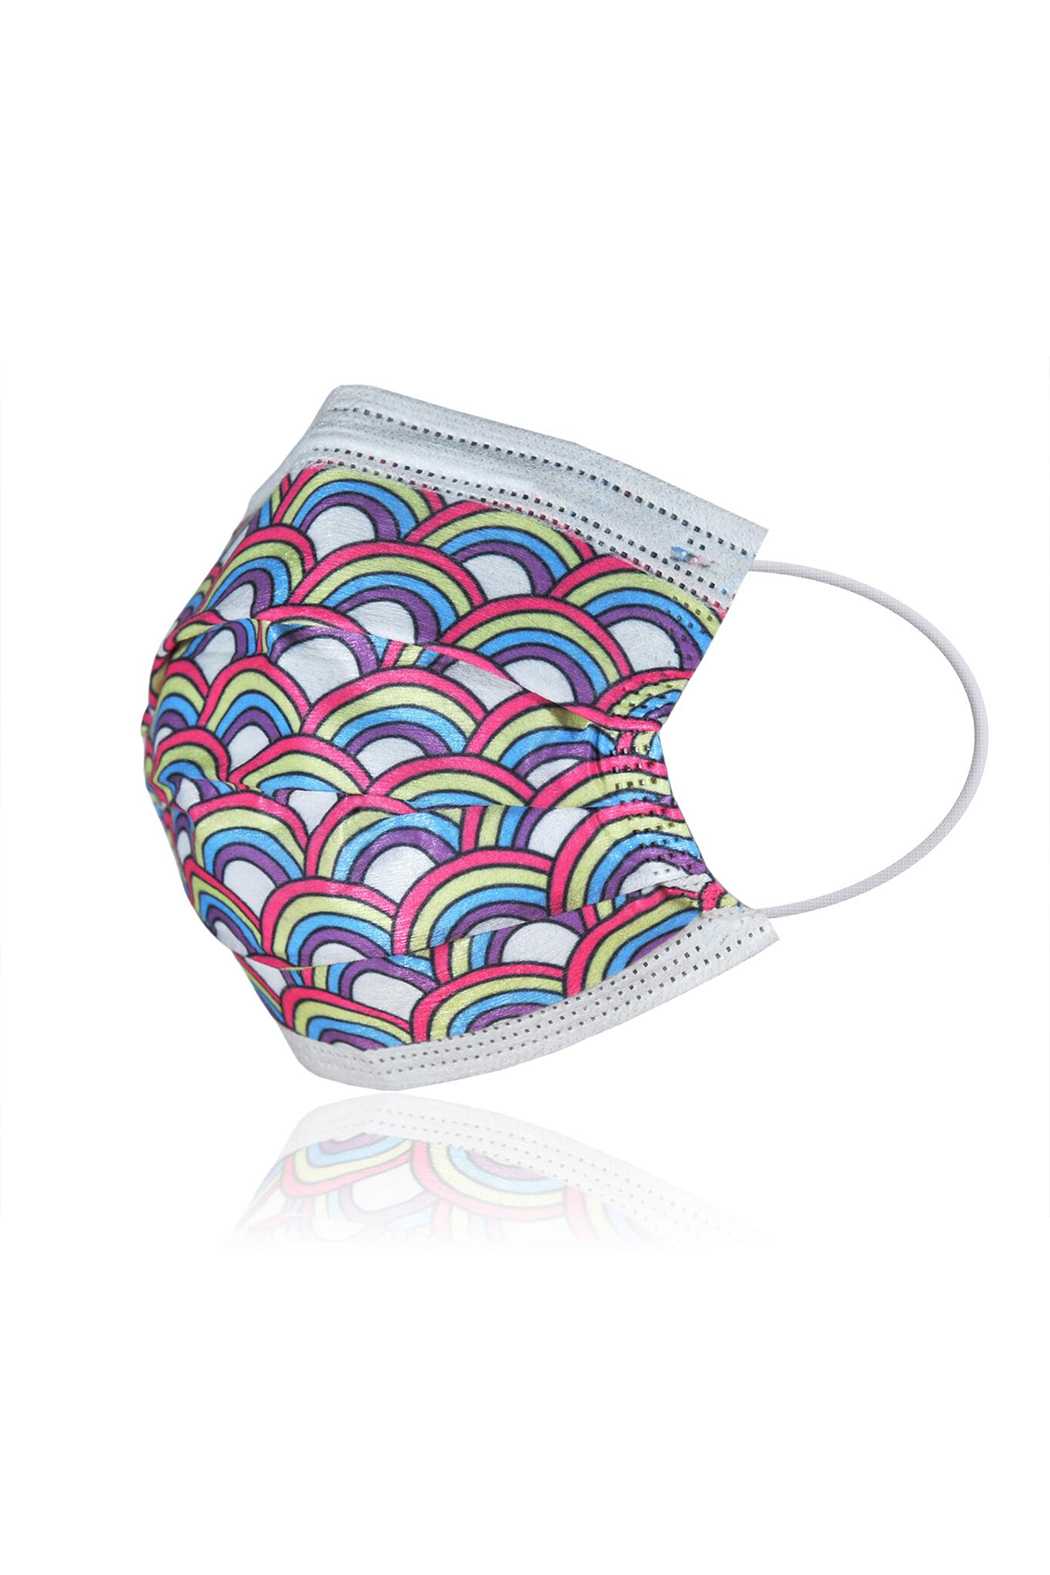 Watchitude Fun Carbon Masks Butterfly/Rainbow Playground 6 Pack - Kids Ages 5-12 - Back Cropped Image